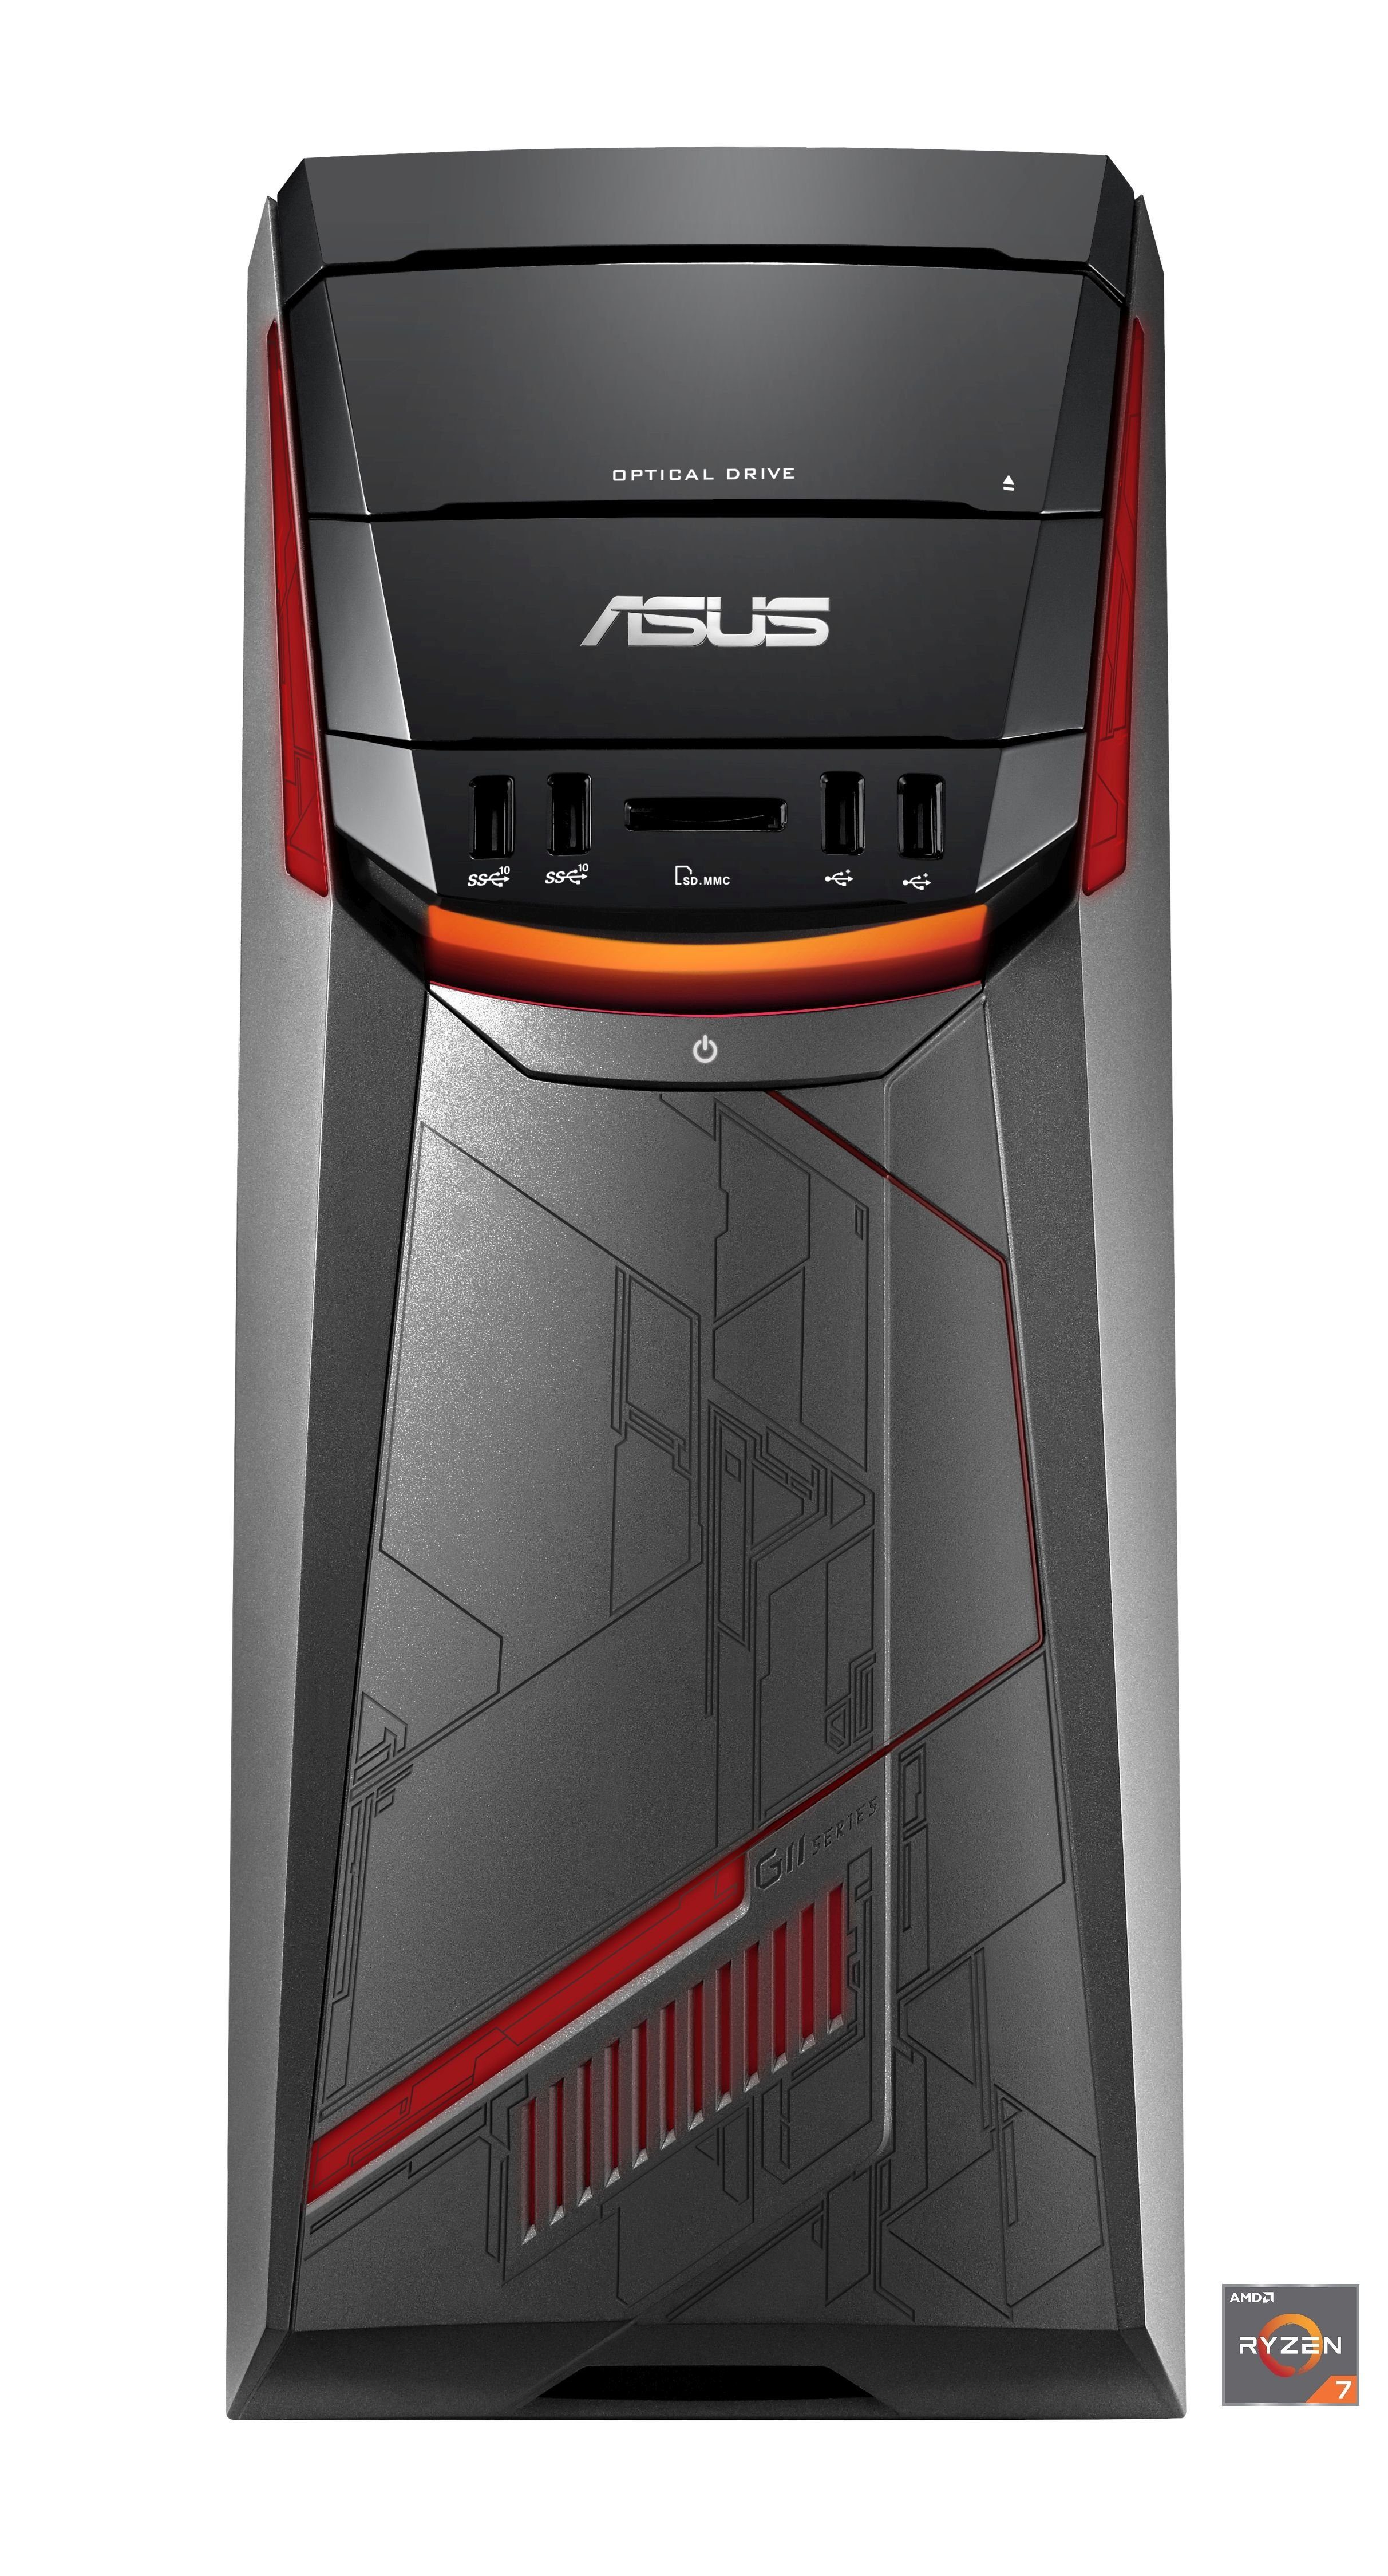 ASUS G11DF-DE015T Gaming-PC »AMD 8-Core, GTX 1070, 256 GB SSD + 1 TB HDD, 8 GB«